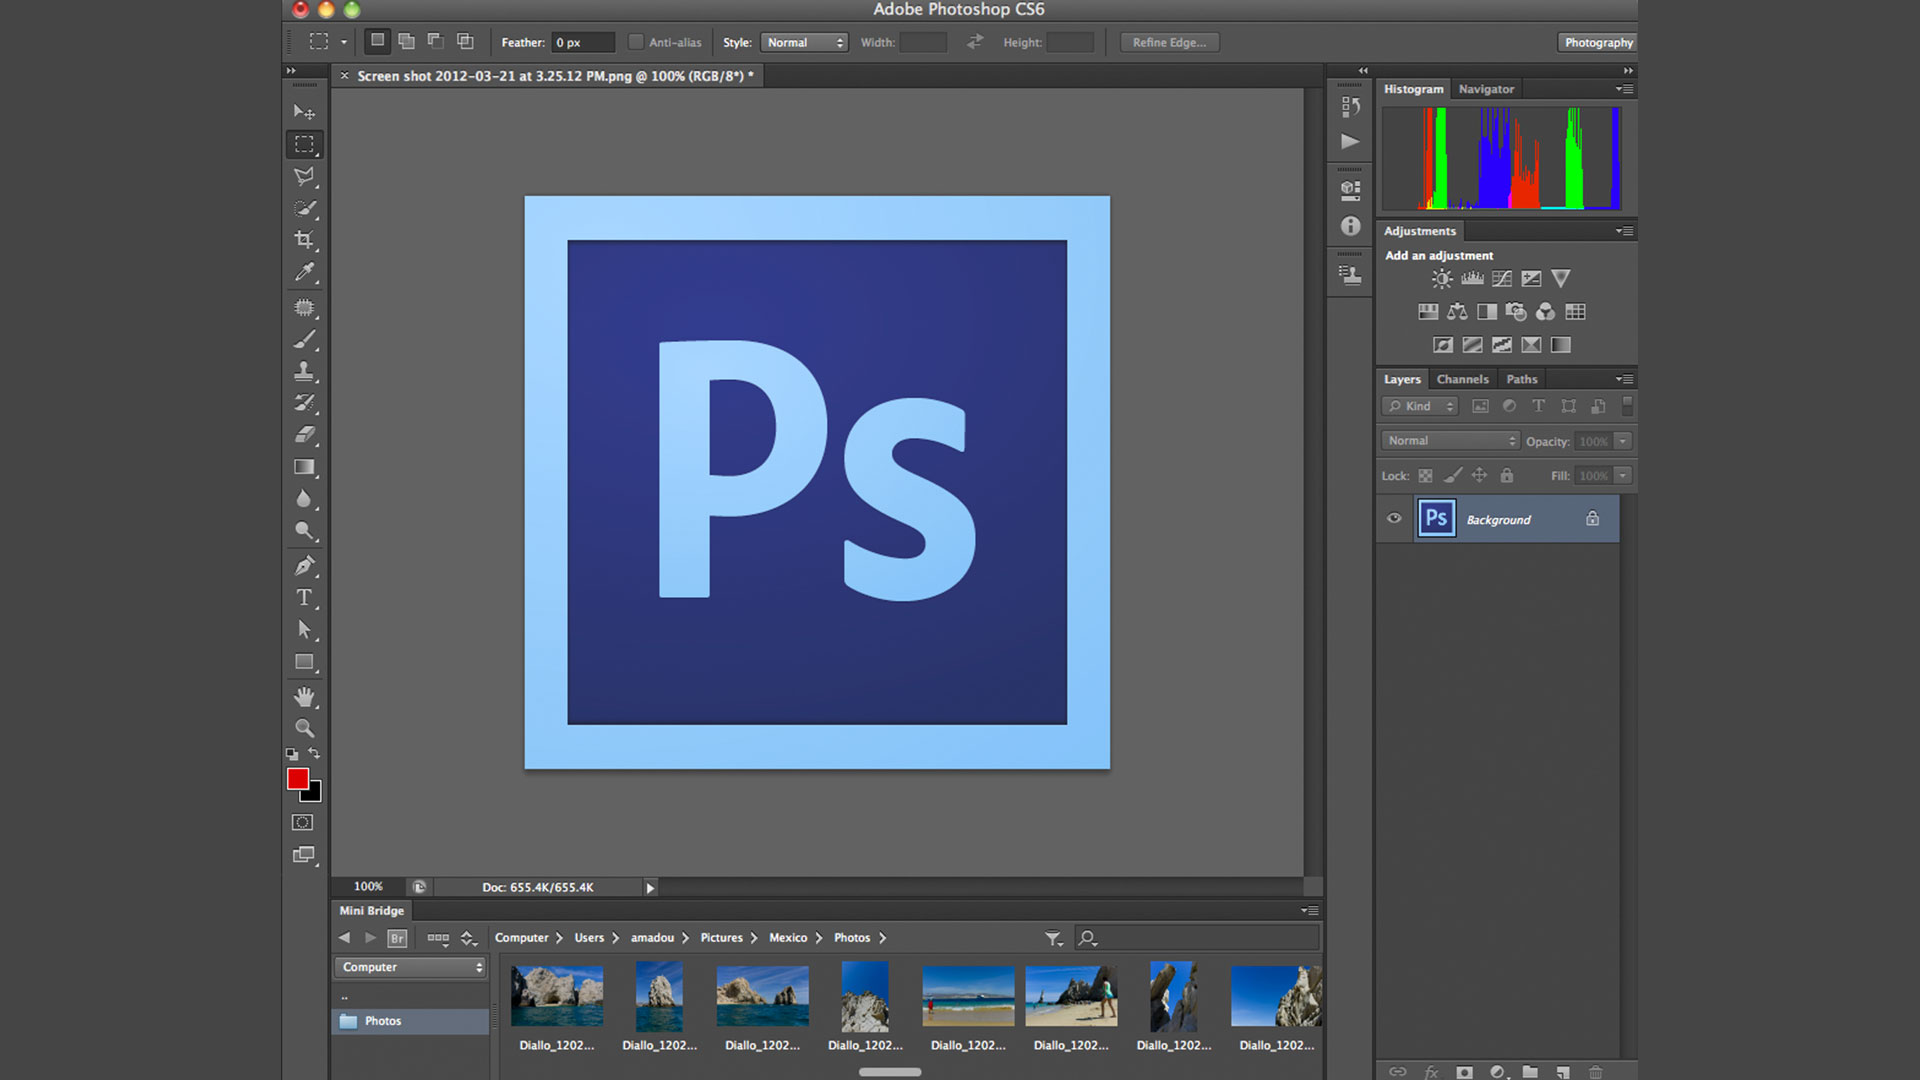 Adobe Photoshop CS6 One on One Fundamentals – 4 – Using Layers – 4-9 Blending inside a clipping mask